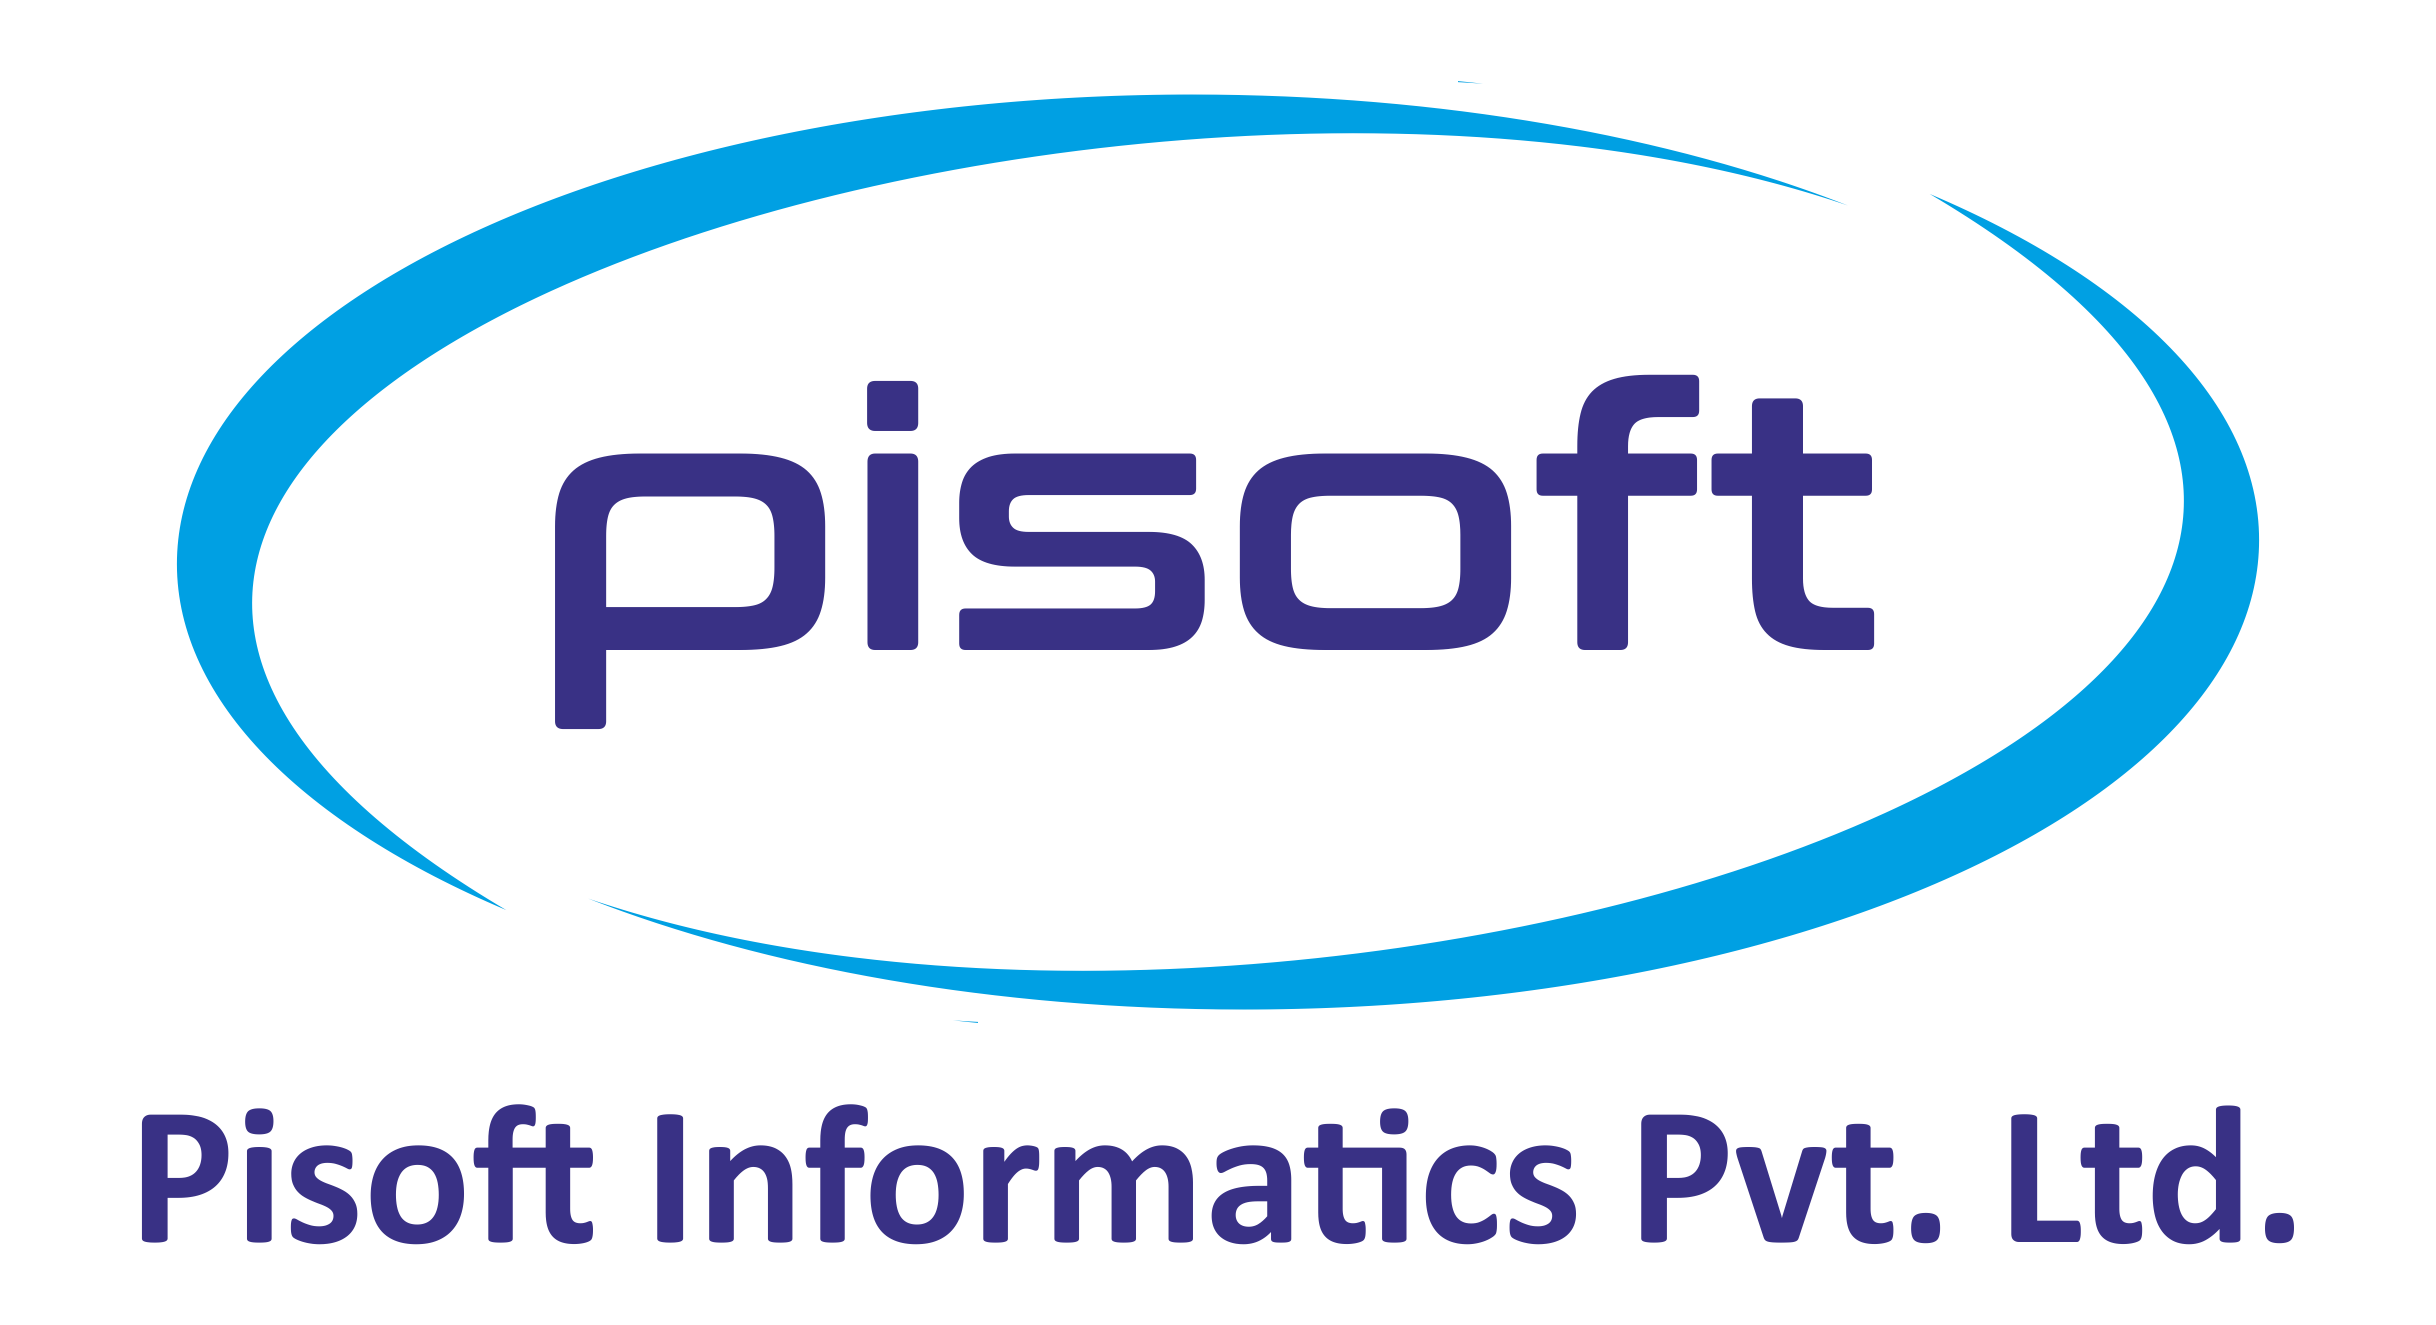 Pisoft Informatics Pvt. Ltd